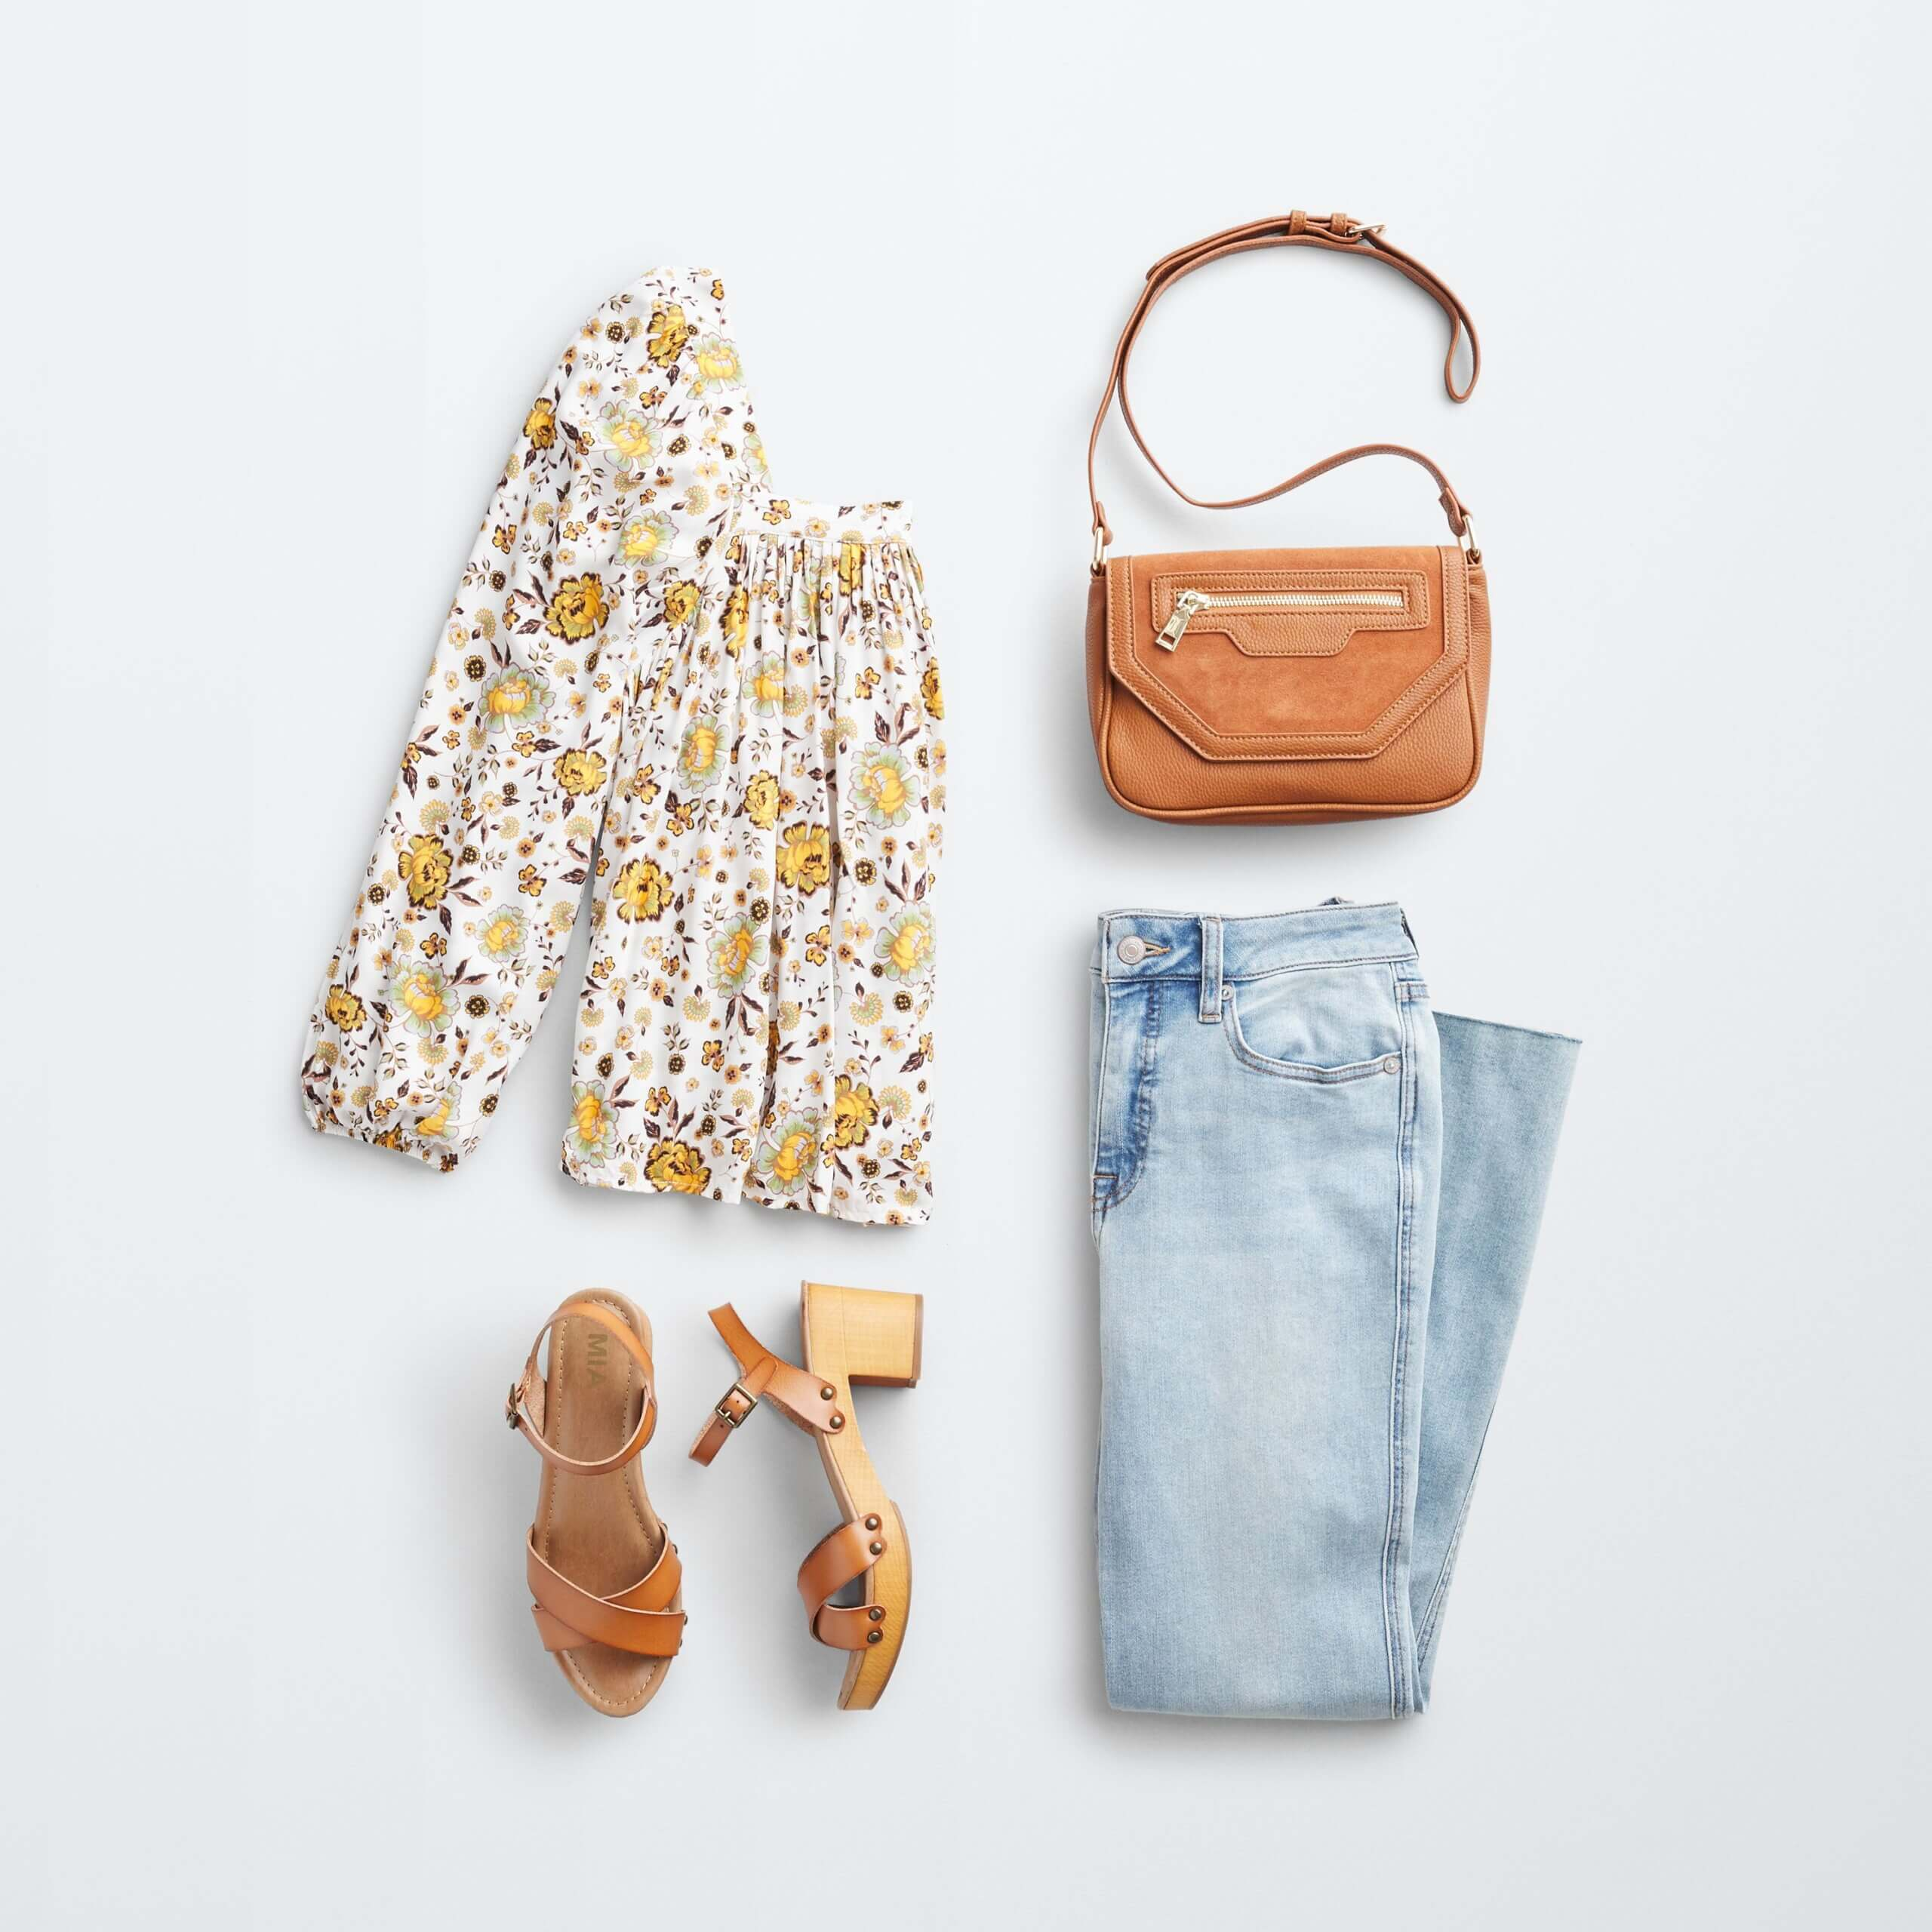 Stitch Fix Women's outfit laydown featuring white boho blouse with yellow florals, brown wooden heels, light wash cropped flare jeans and brown crossbody bag.